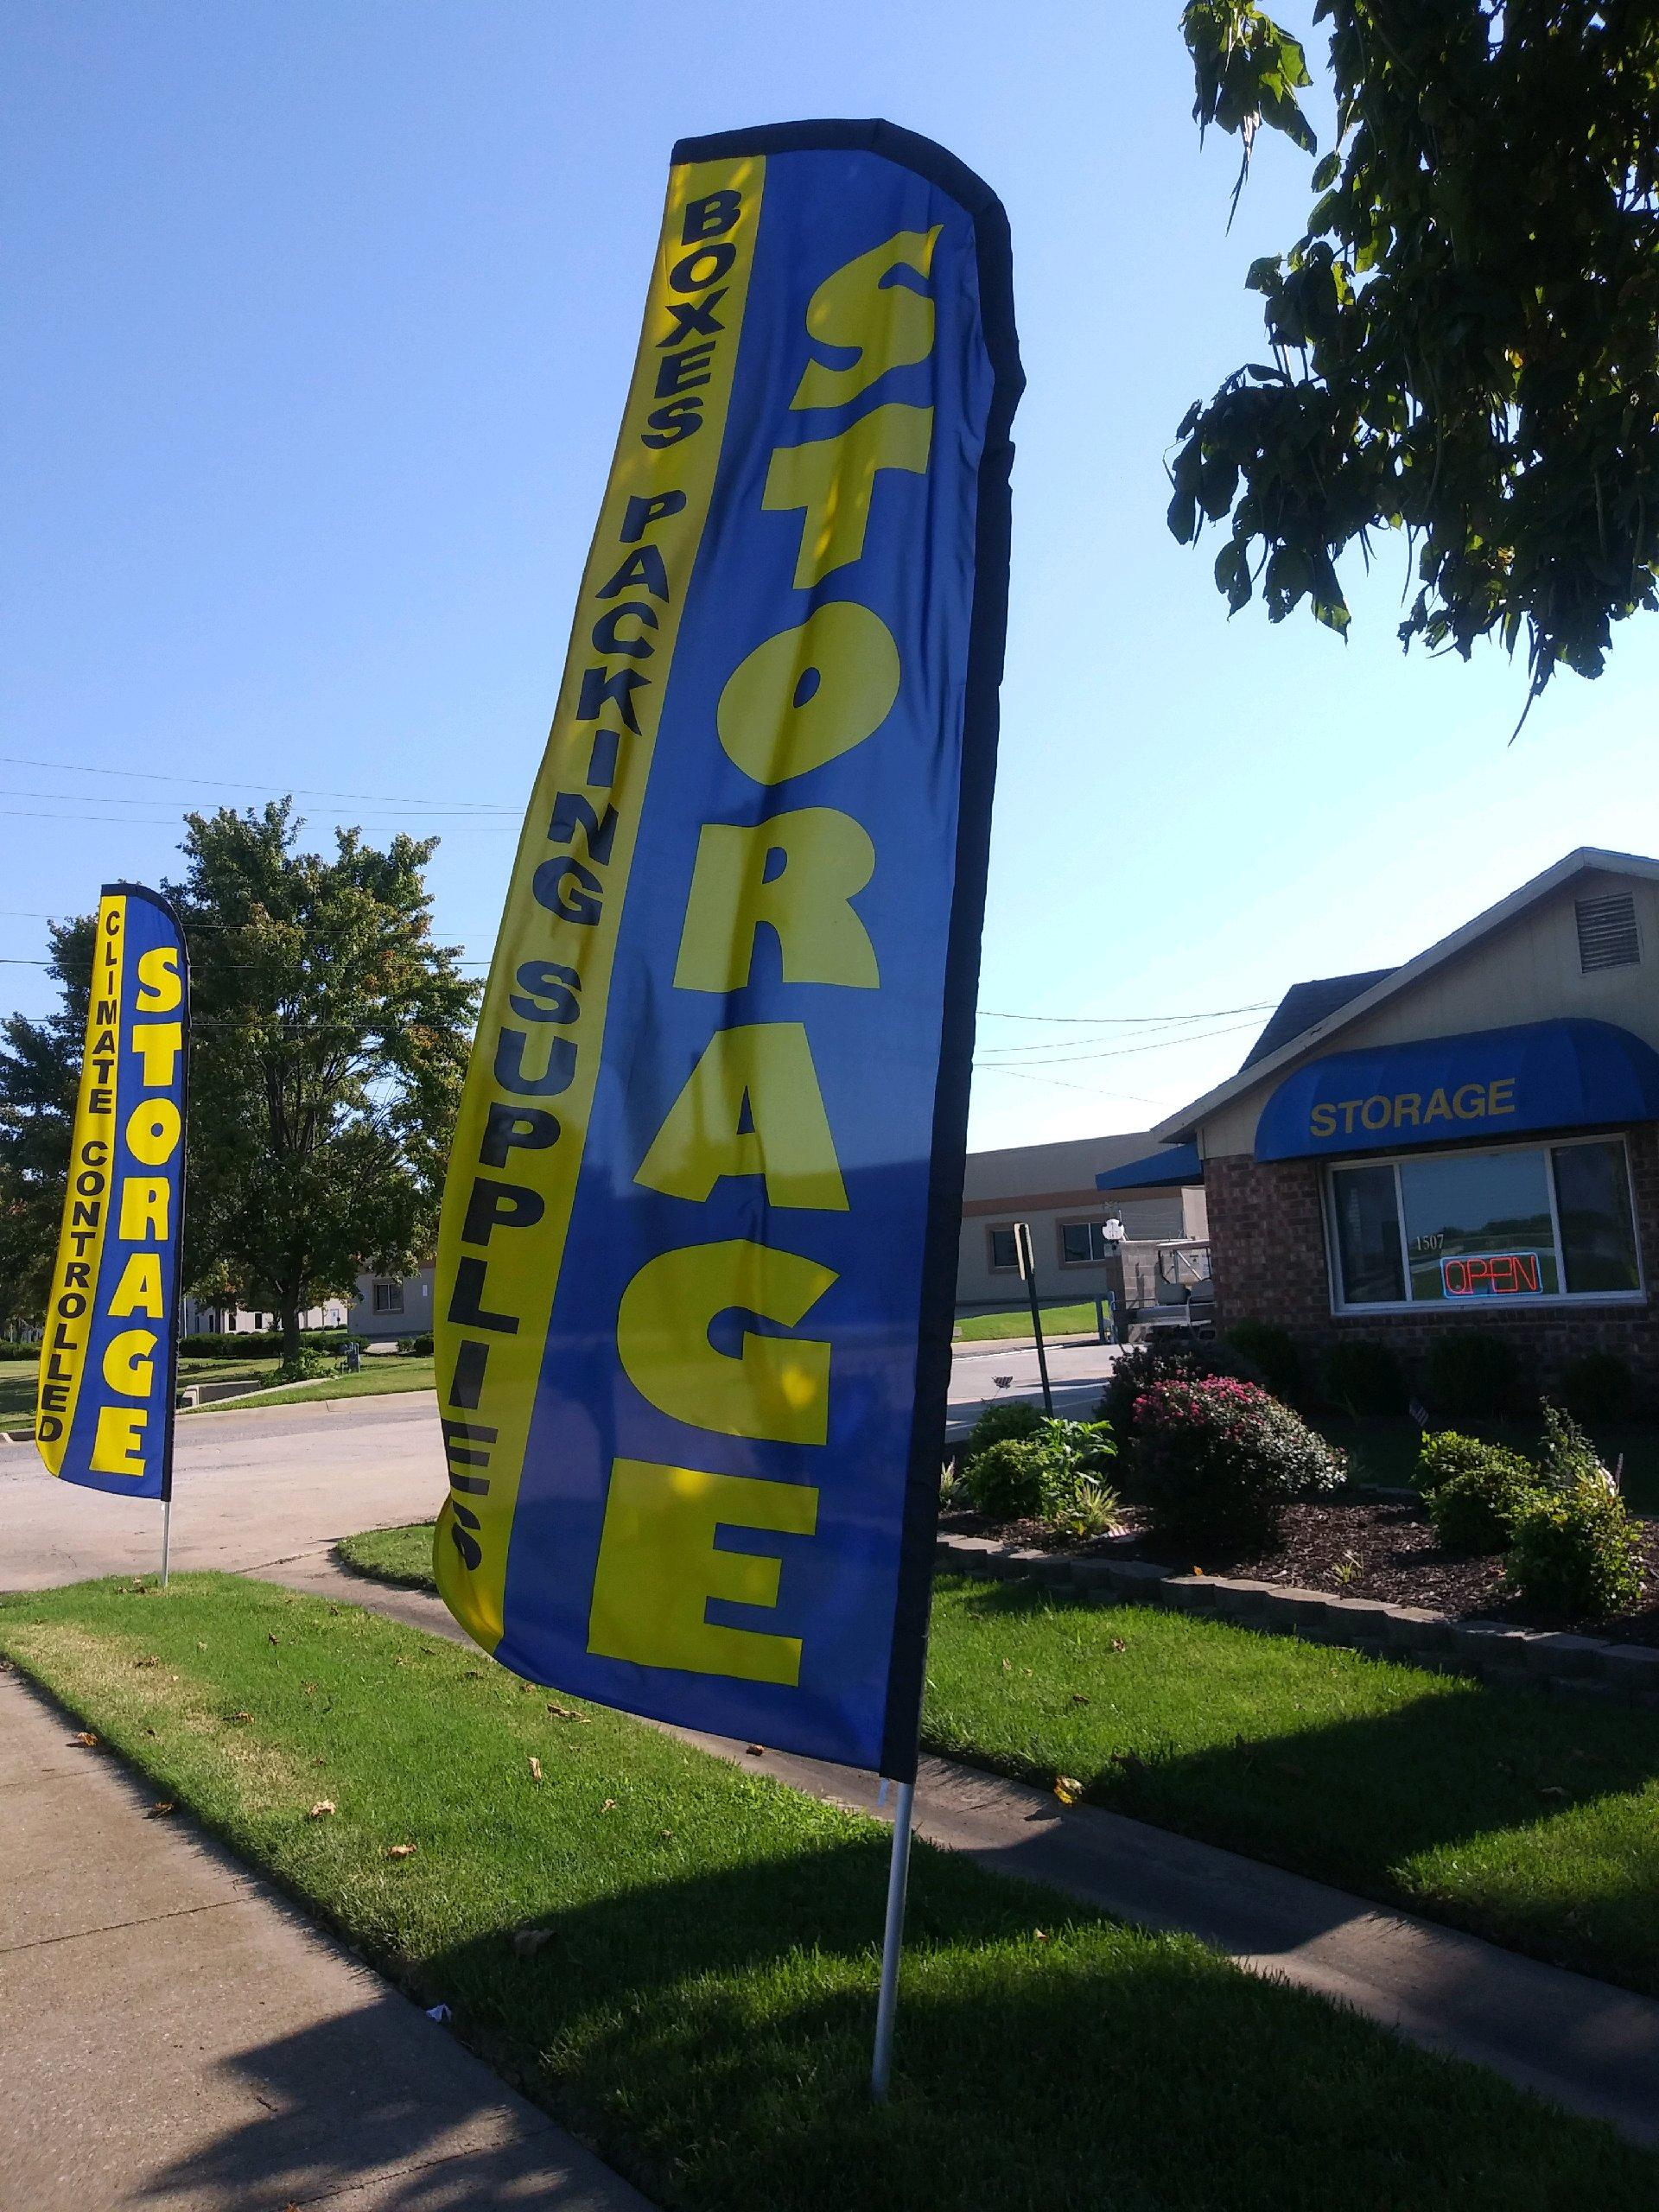 It's a great day at Springdale Self Storage!